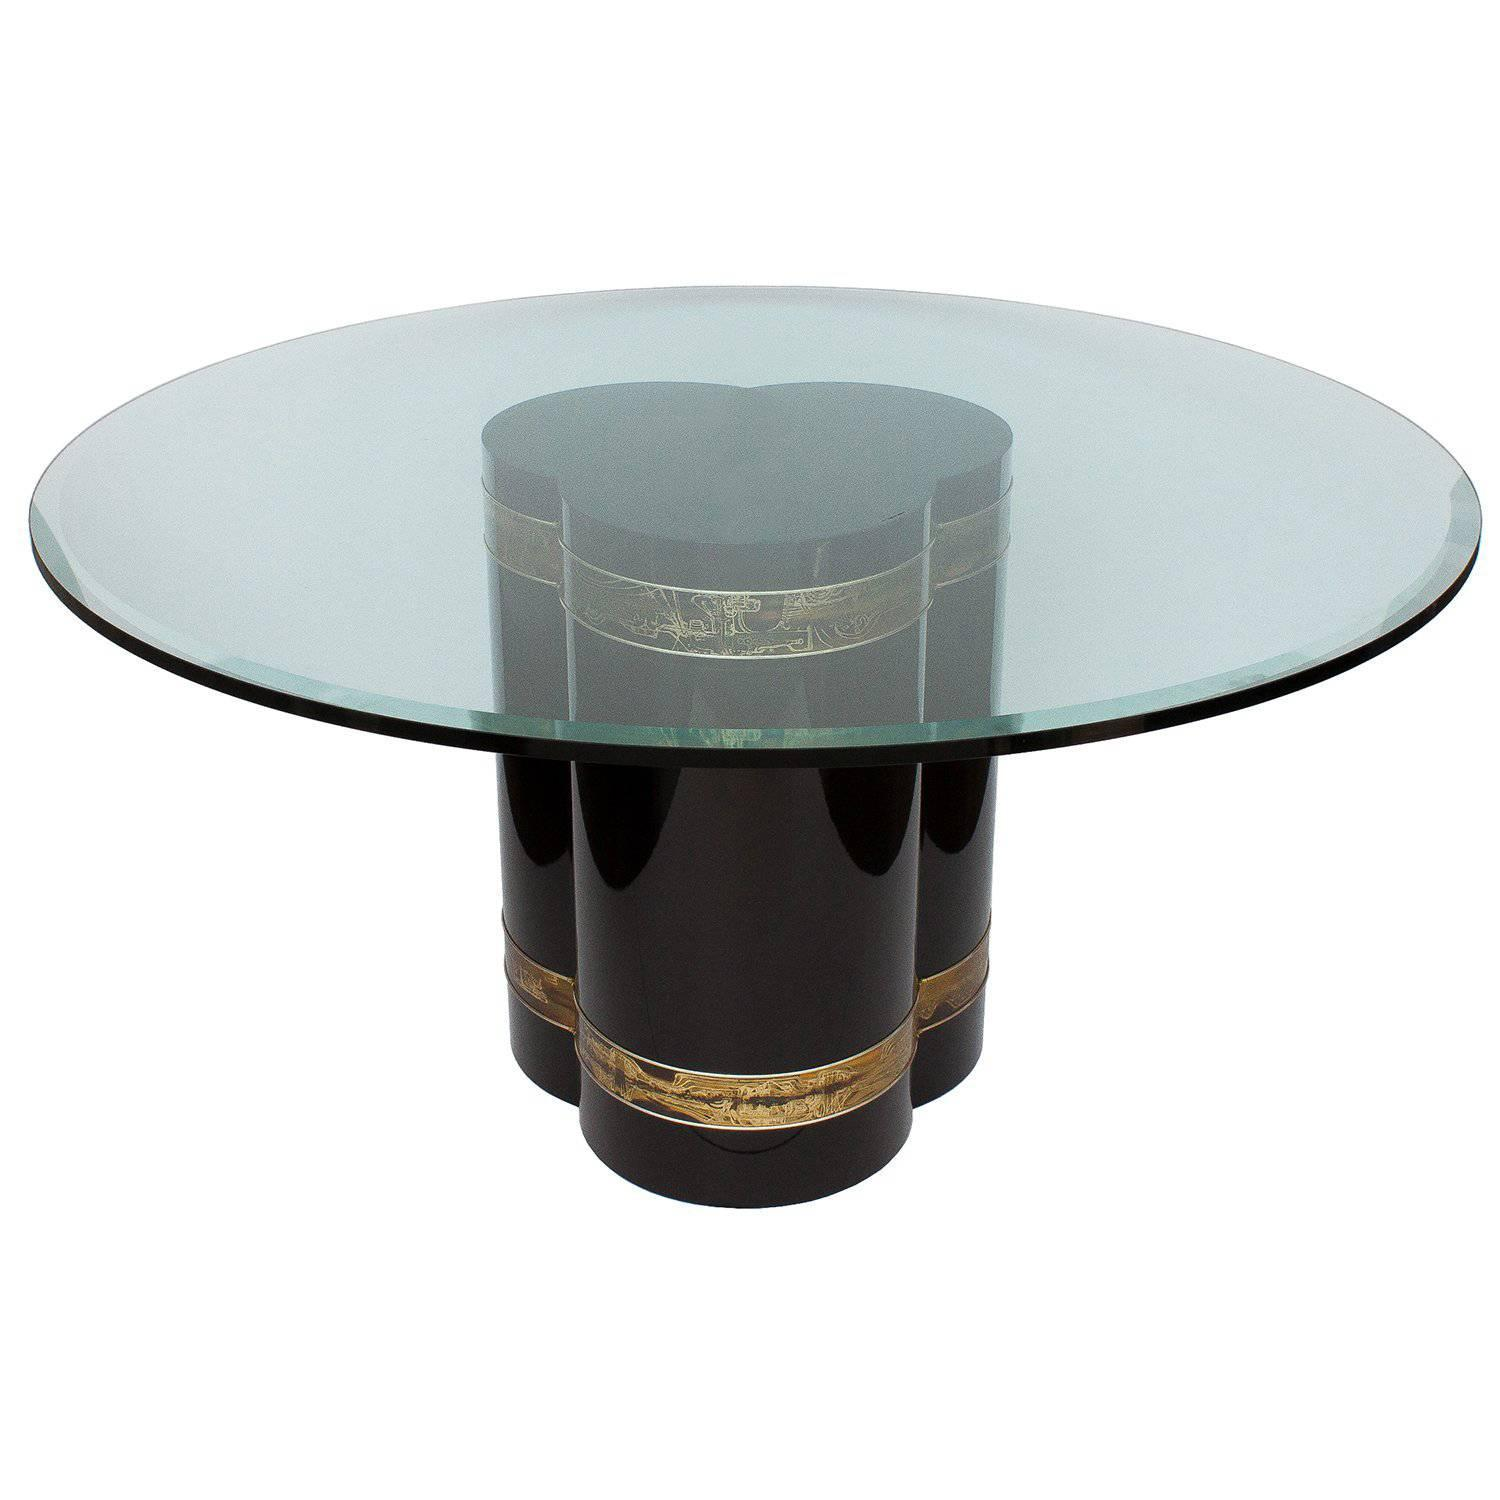 Bernhard Rohne Acid Etched Brass Black Lacquered Pedestal Dining